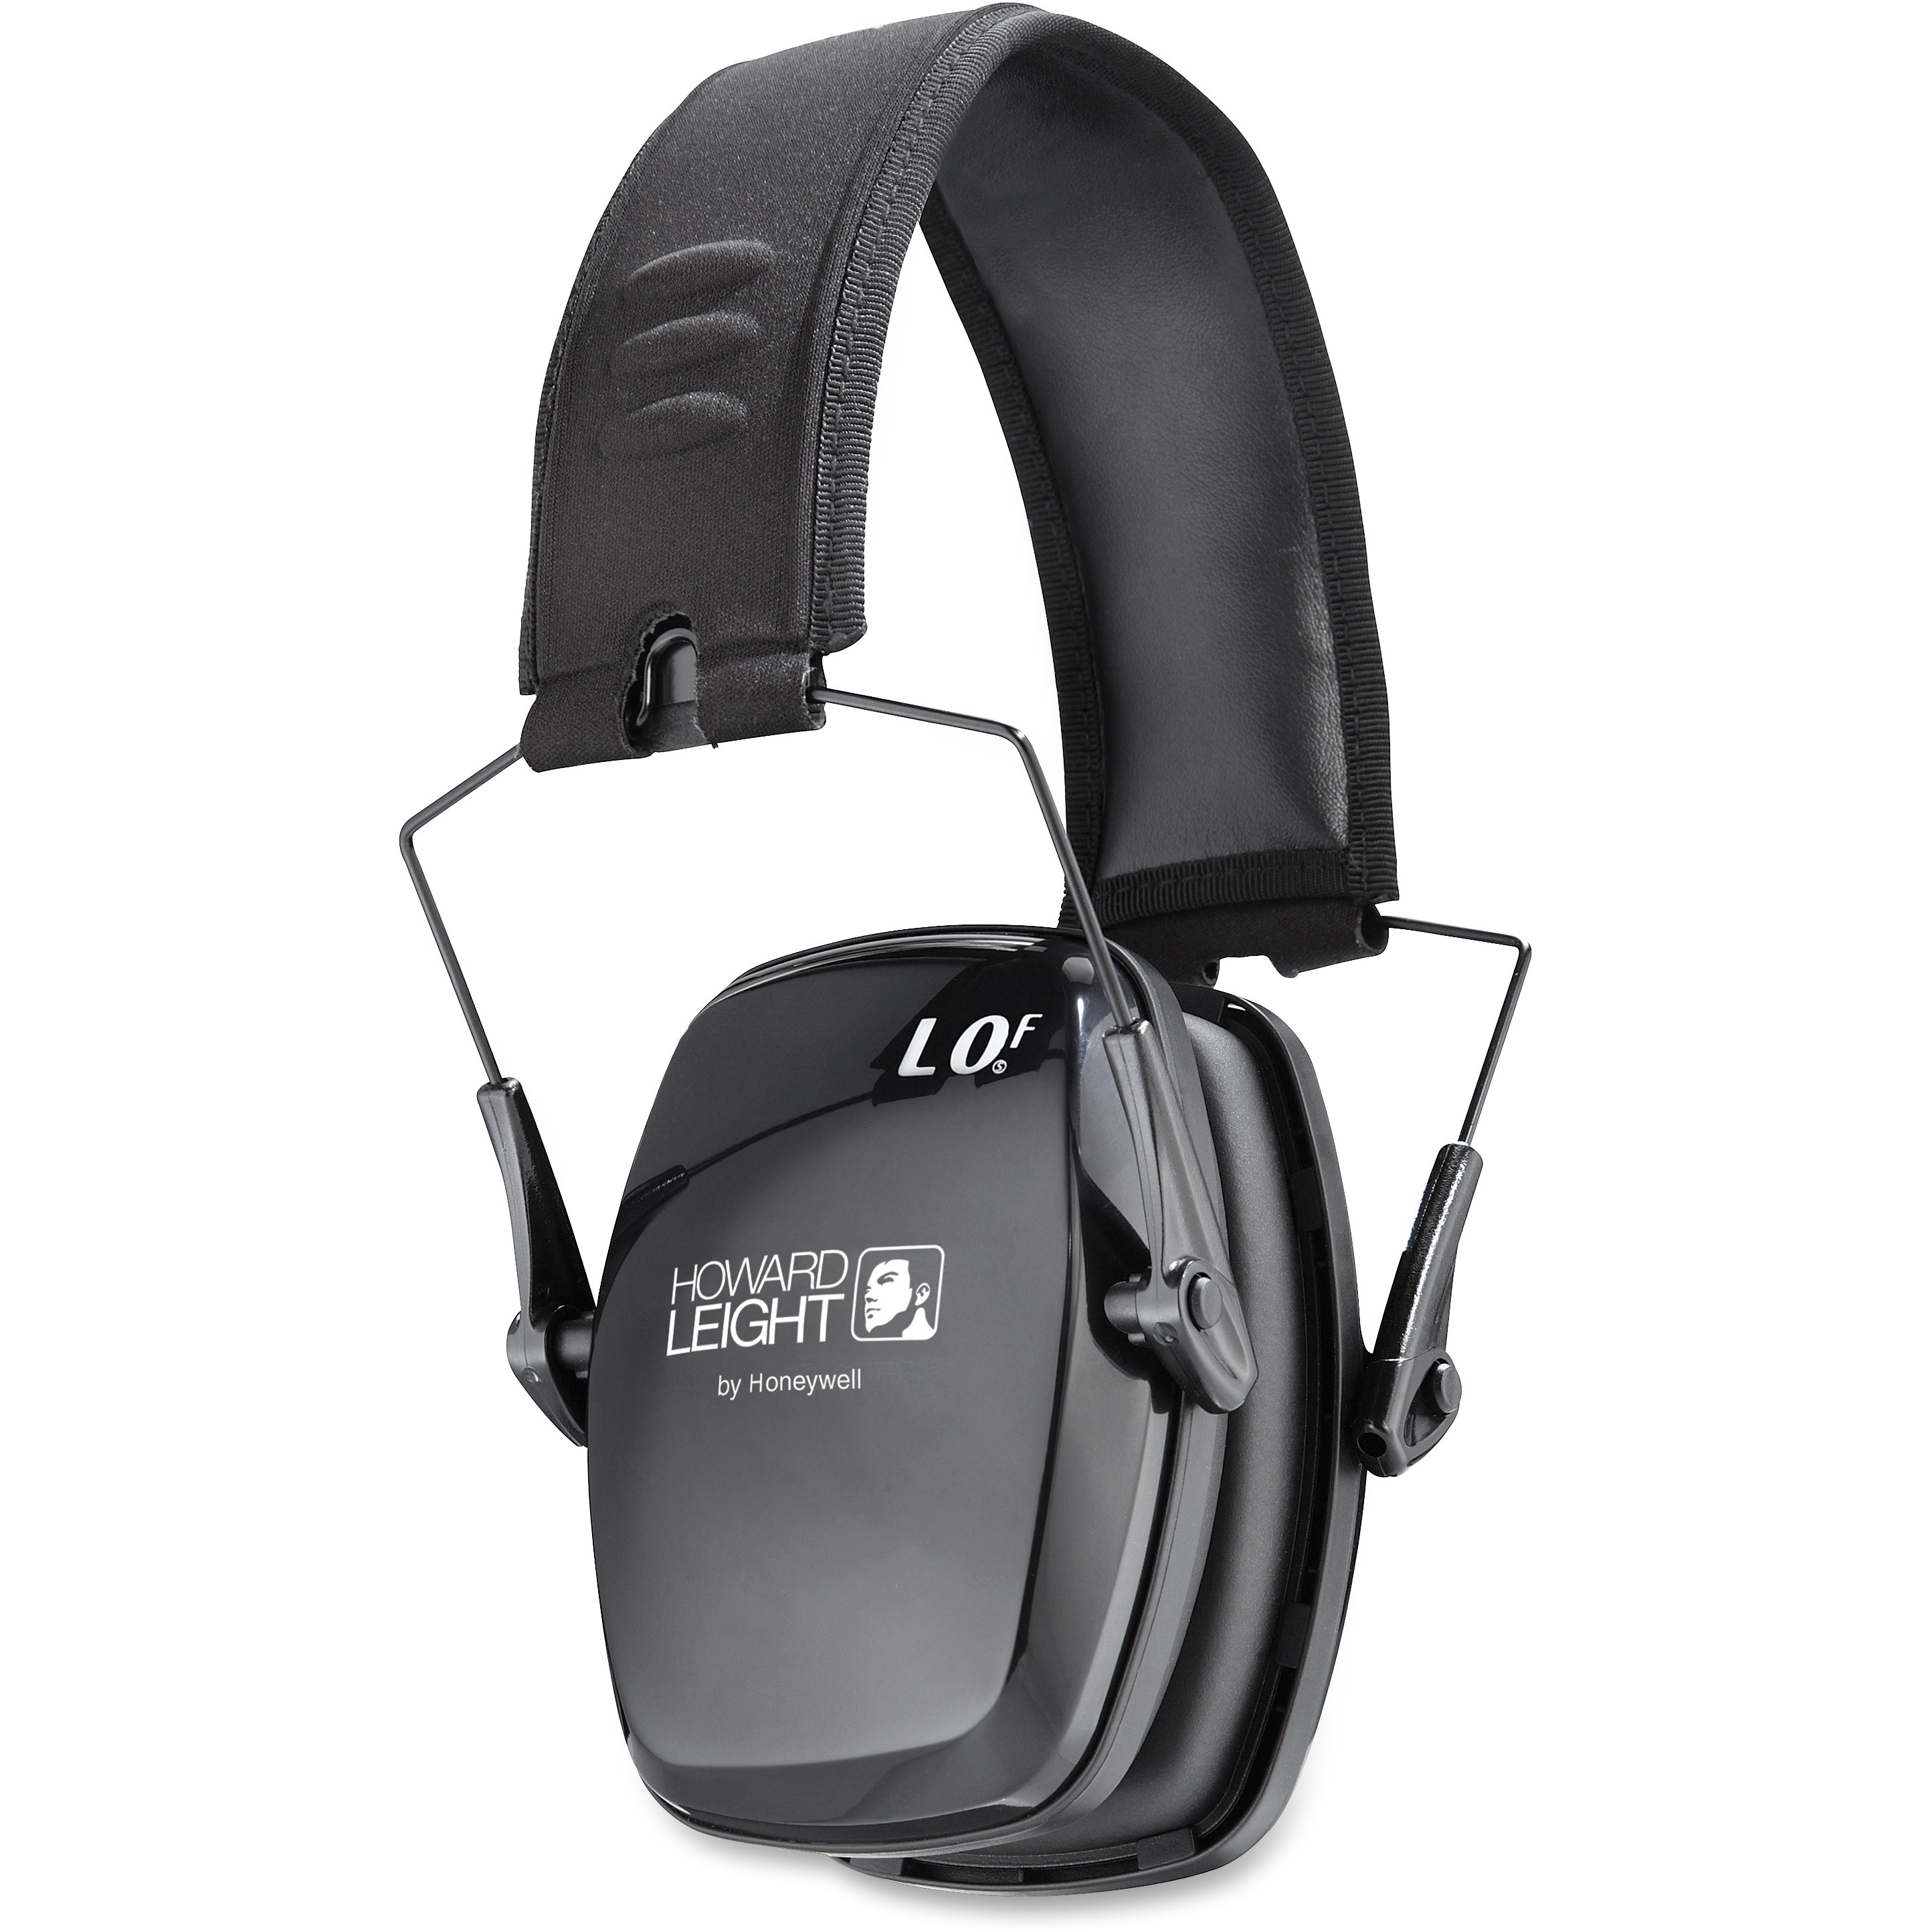 Howard Leight Leightning L0F Folding Earcups